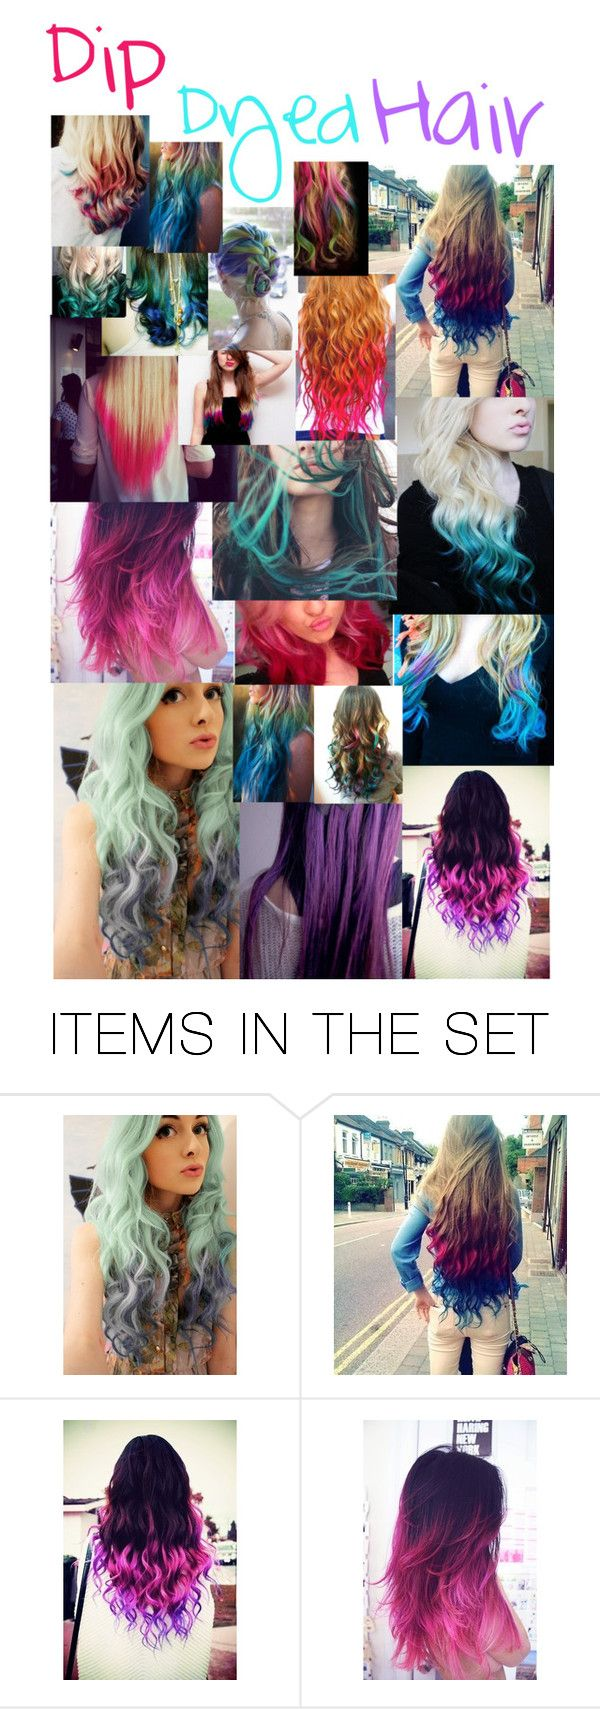 """Dip-Dyed Hair!"" by m-ballard ❤ liked on Polyvore featuring art"